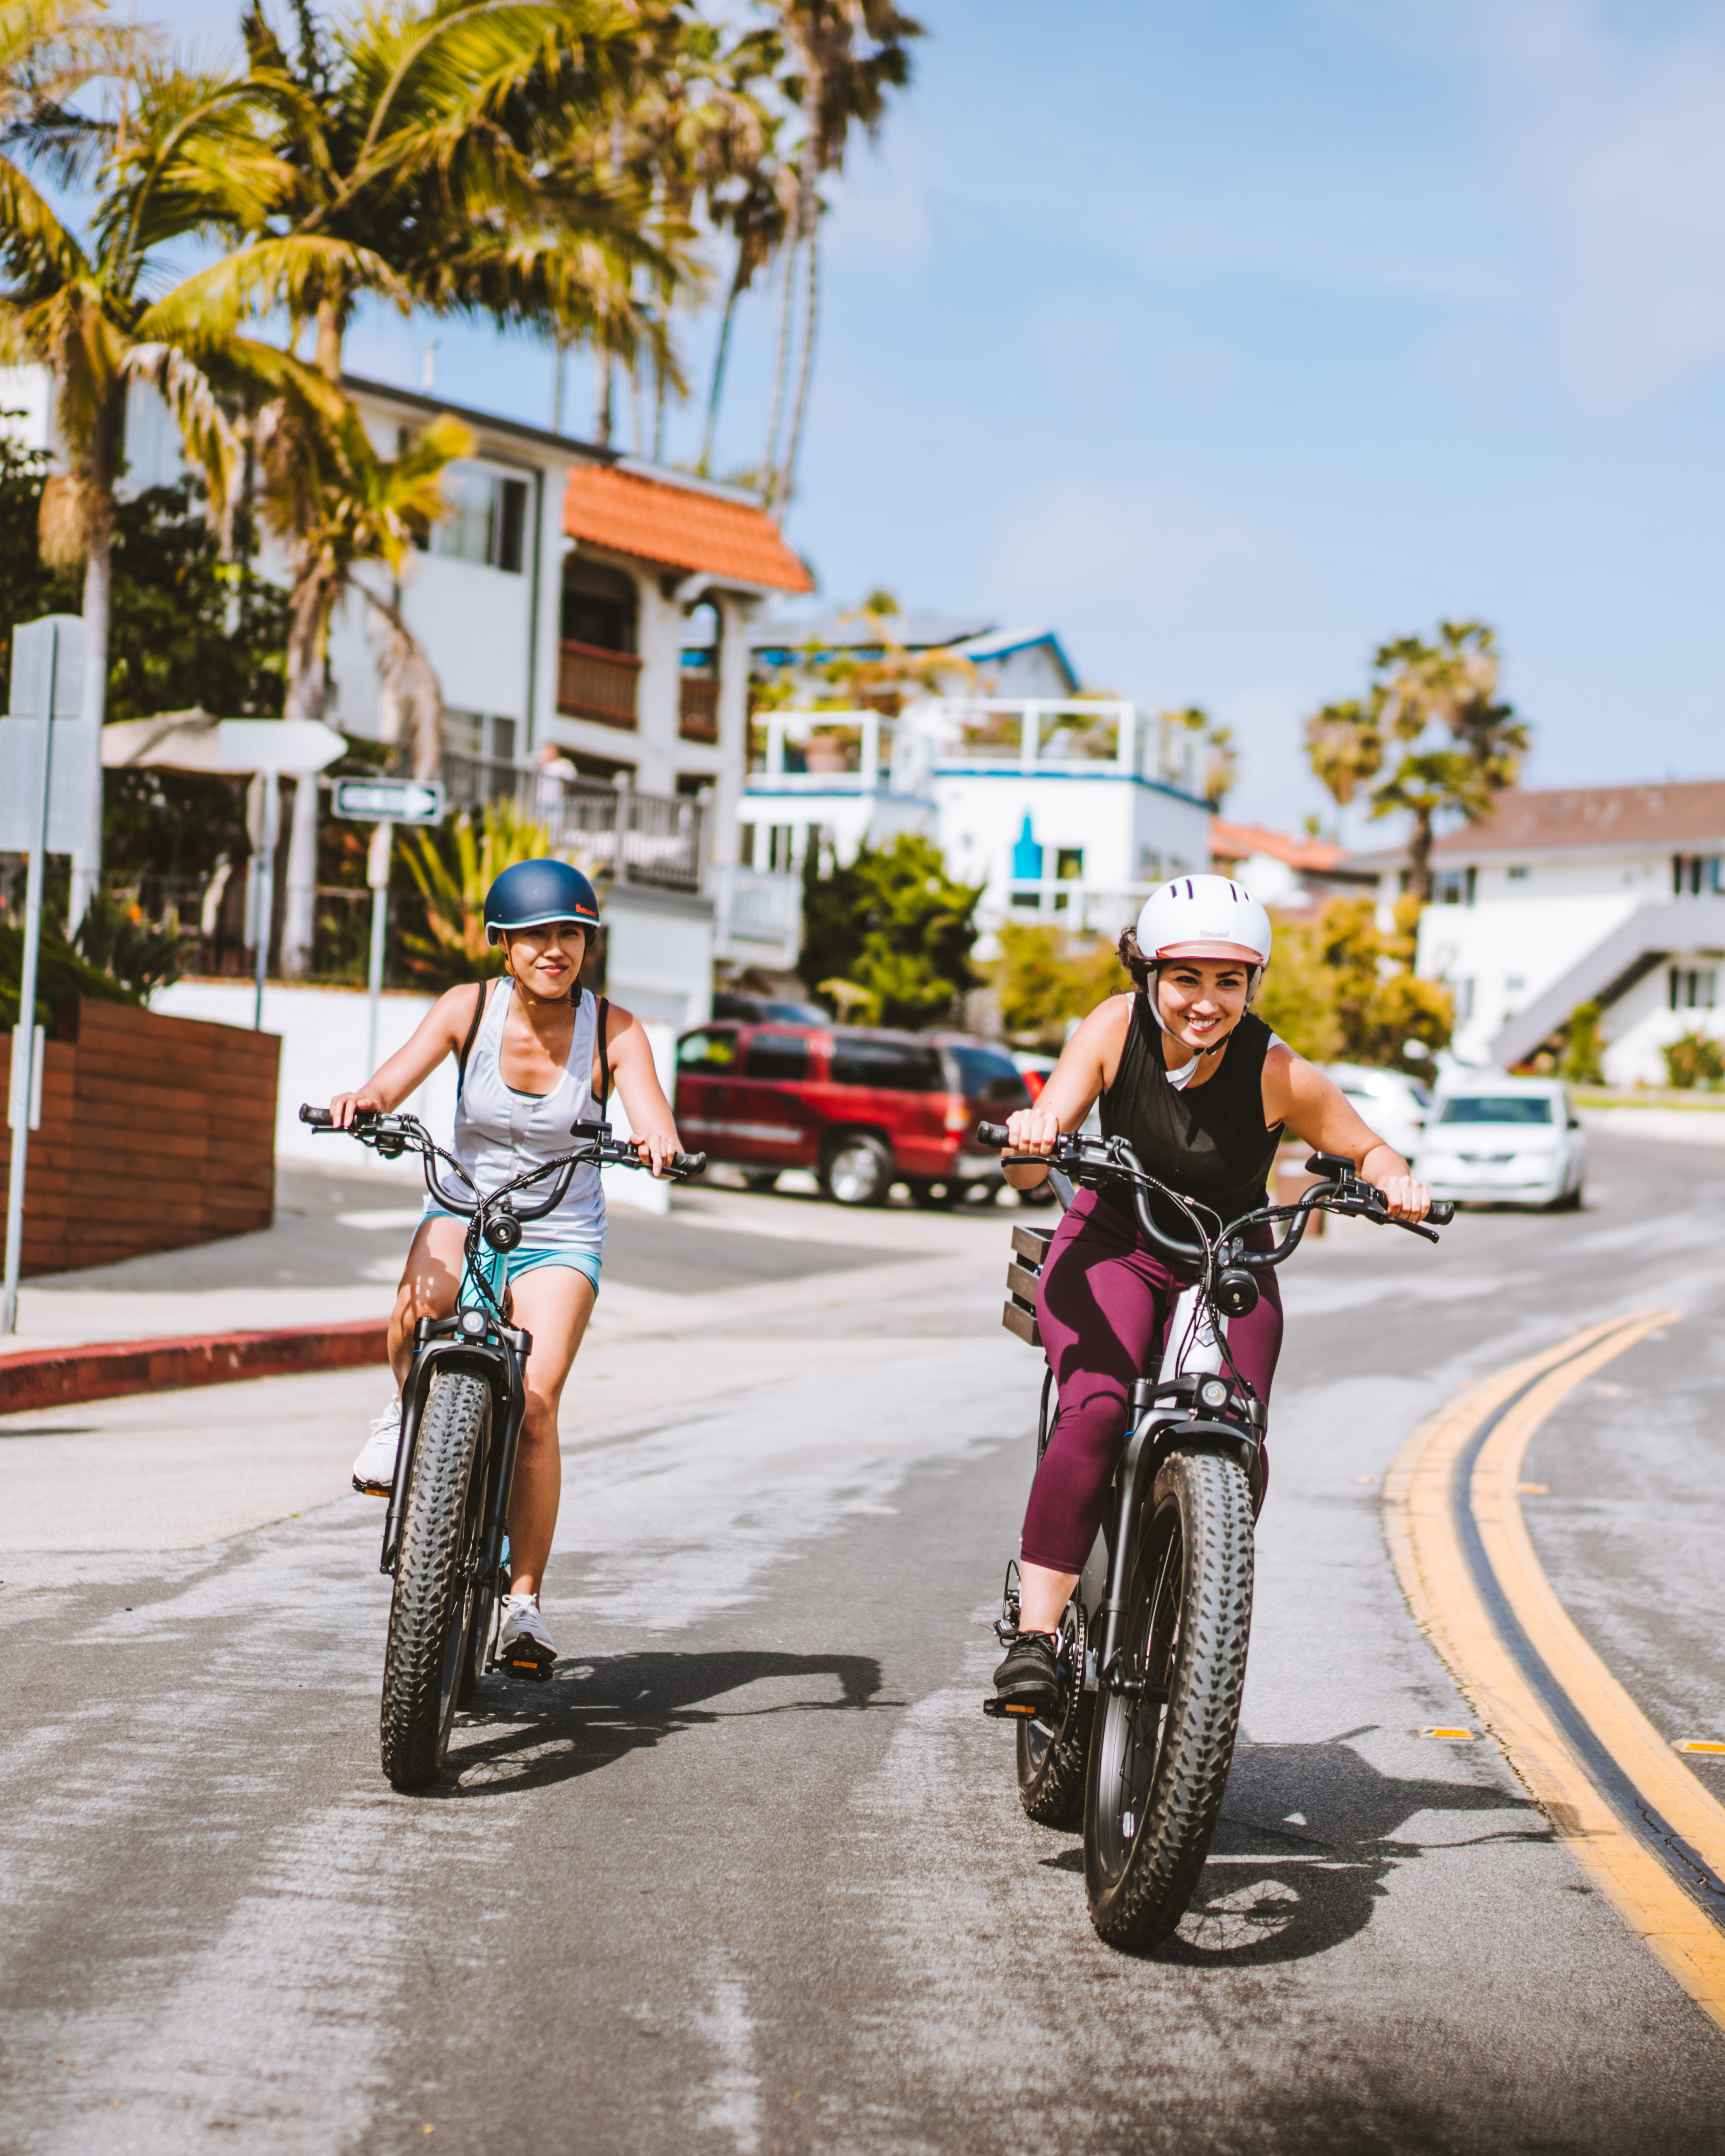 The RipCurrent S Step-Through fat-tire ebike has both cadence and torque pedal-assist sensing, and a thumb throttle too